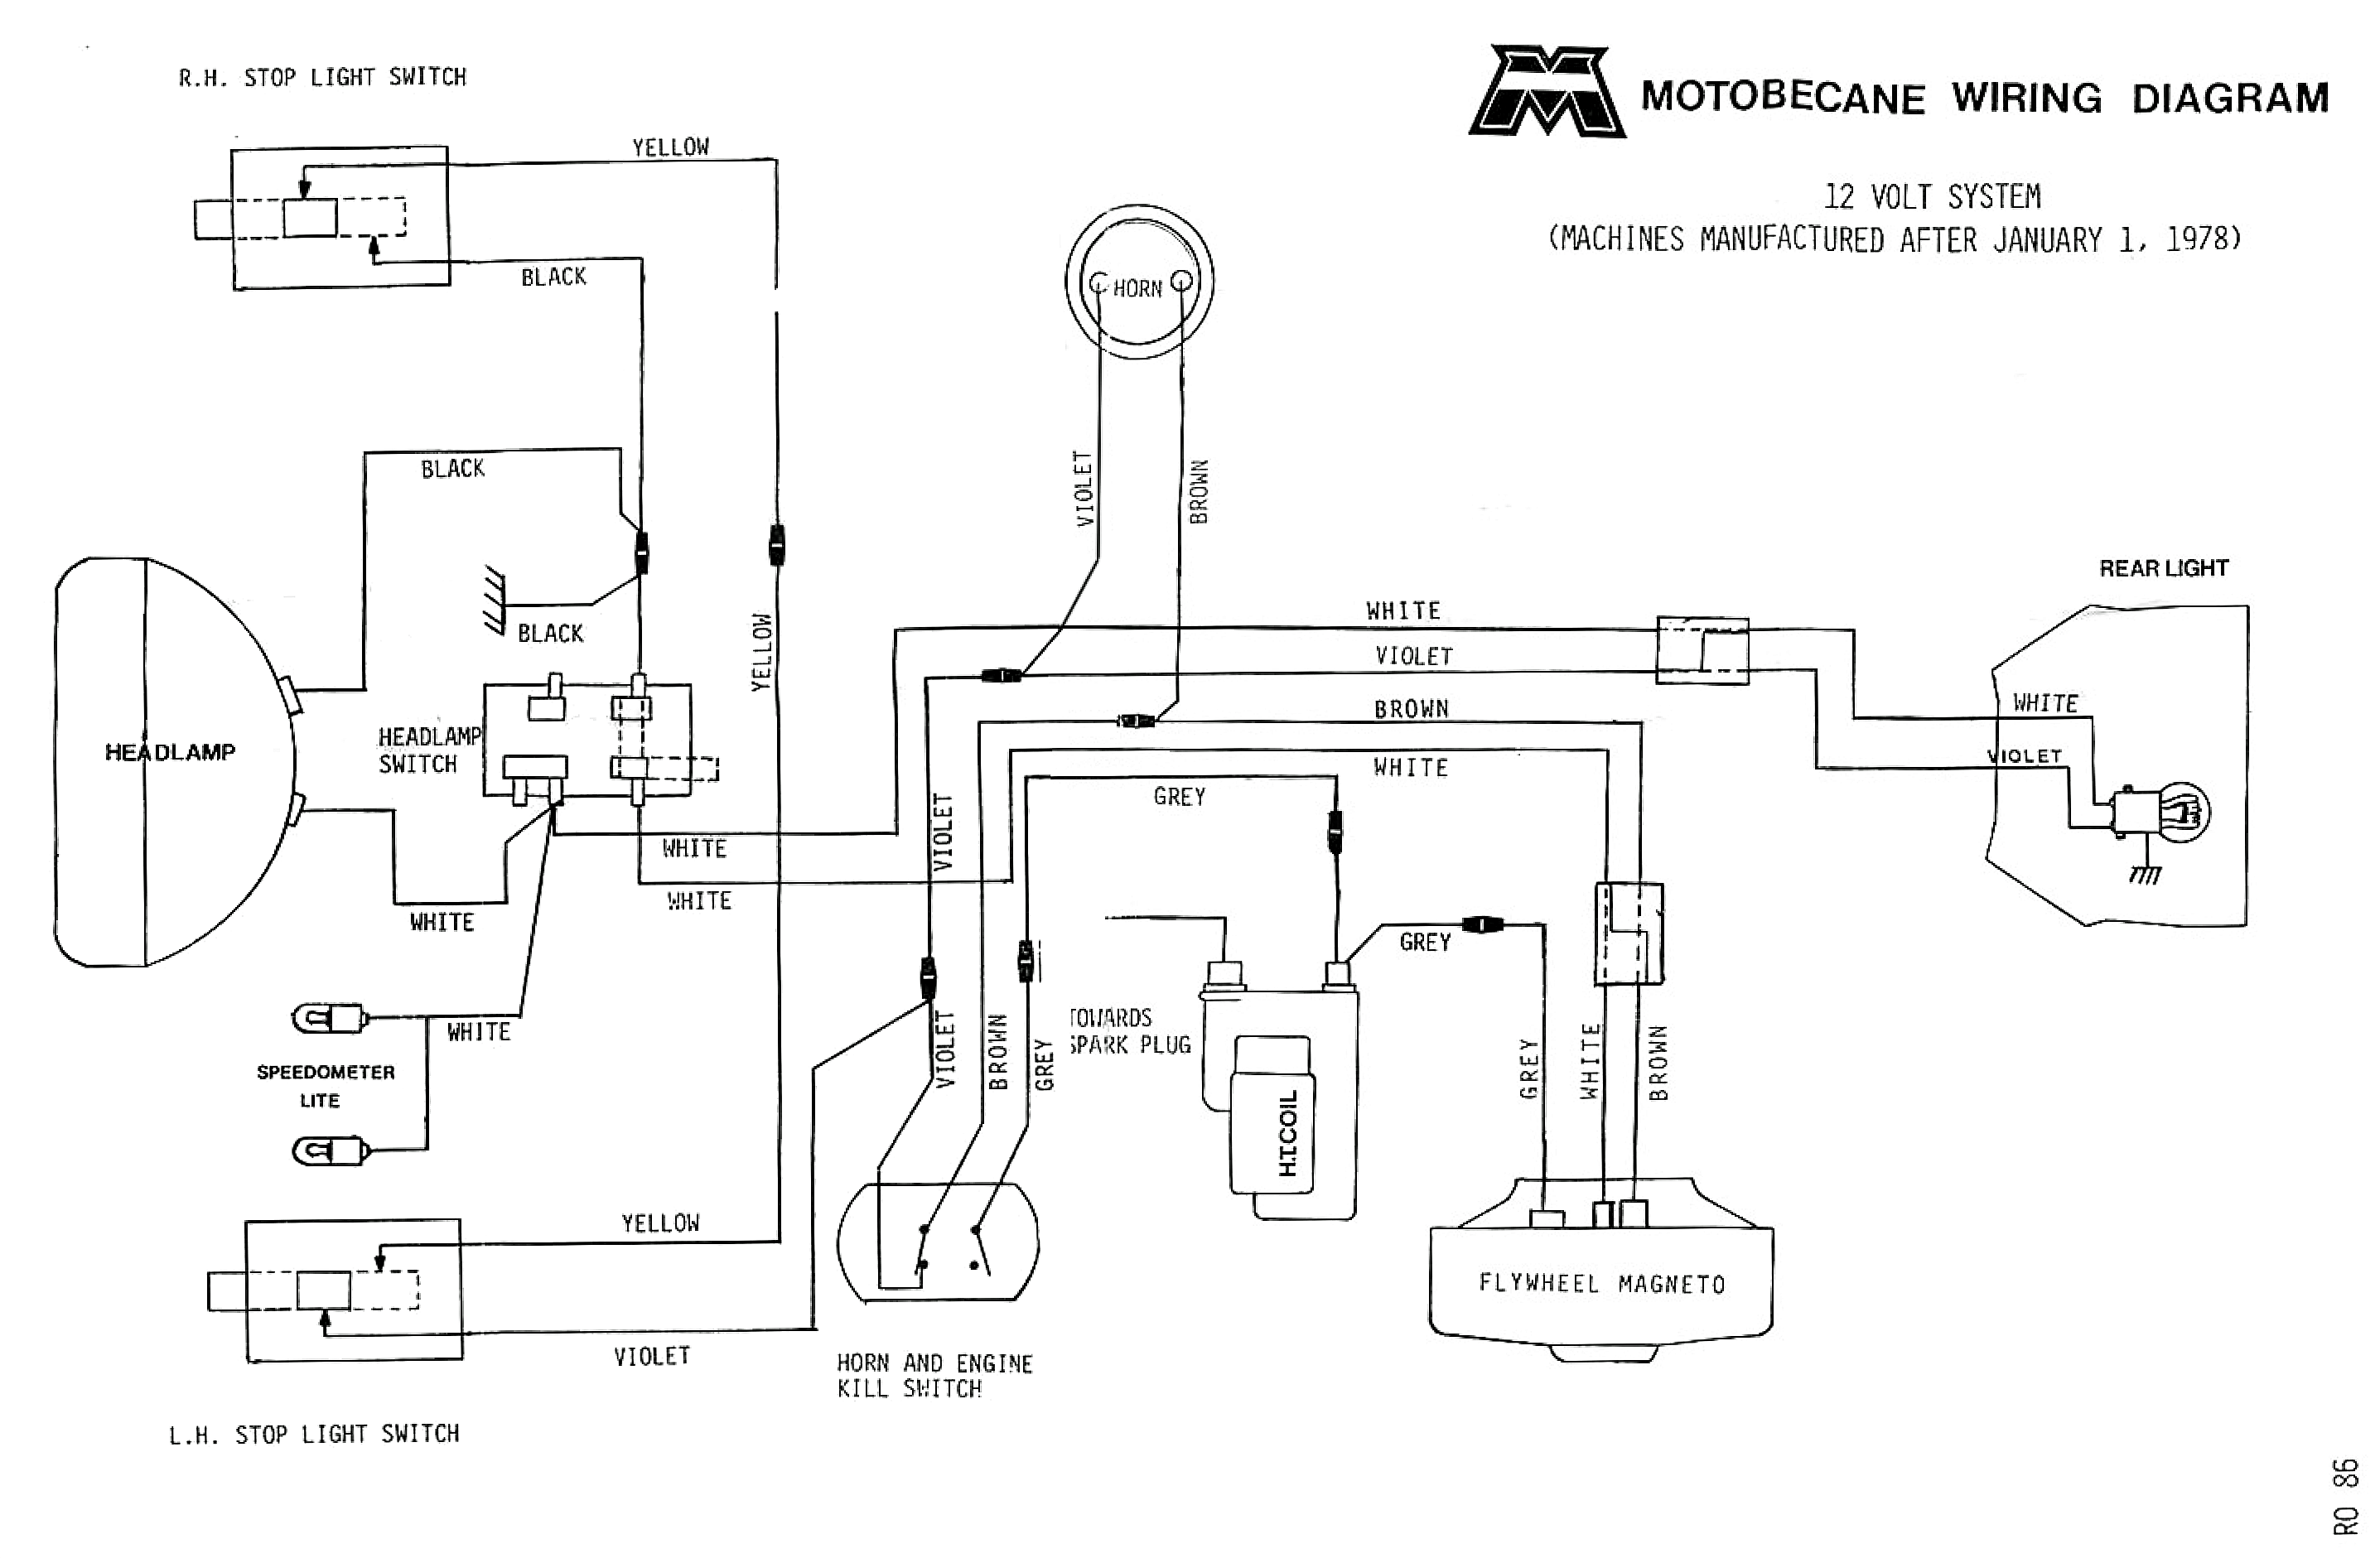 Motobecane V Wiring Diagram on Ford 460 Firing Order Diagram